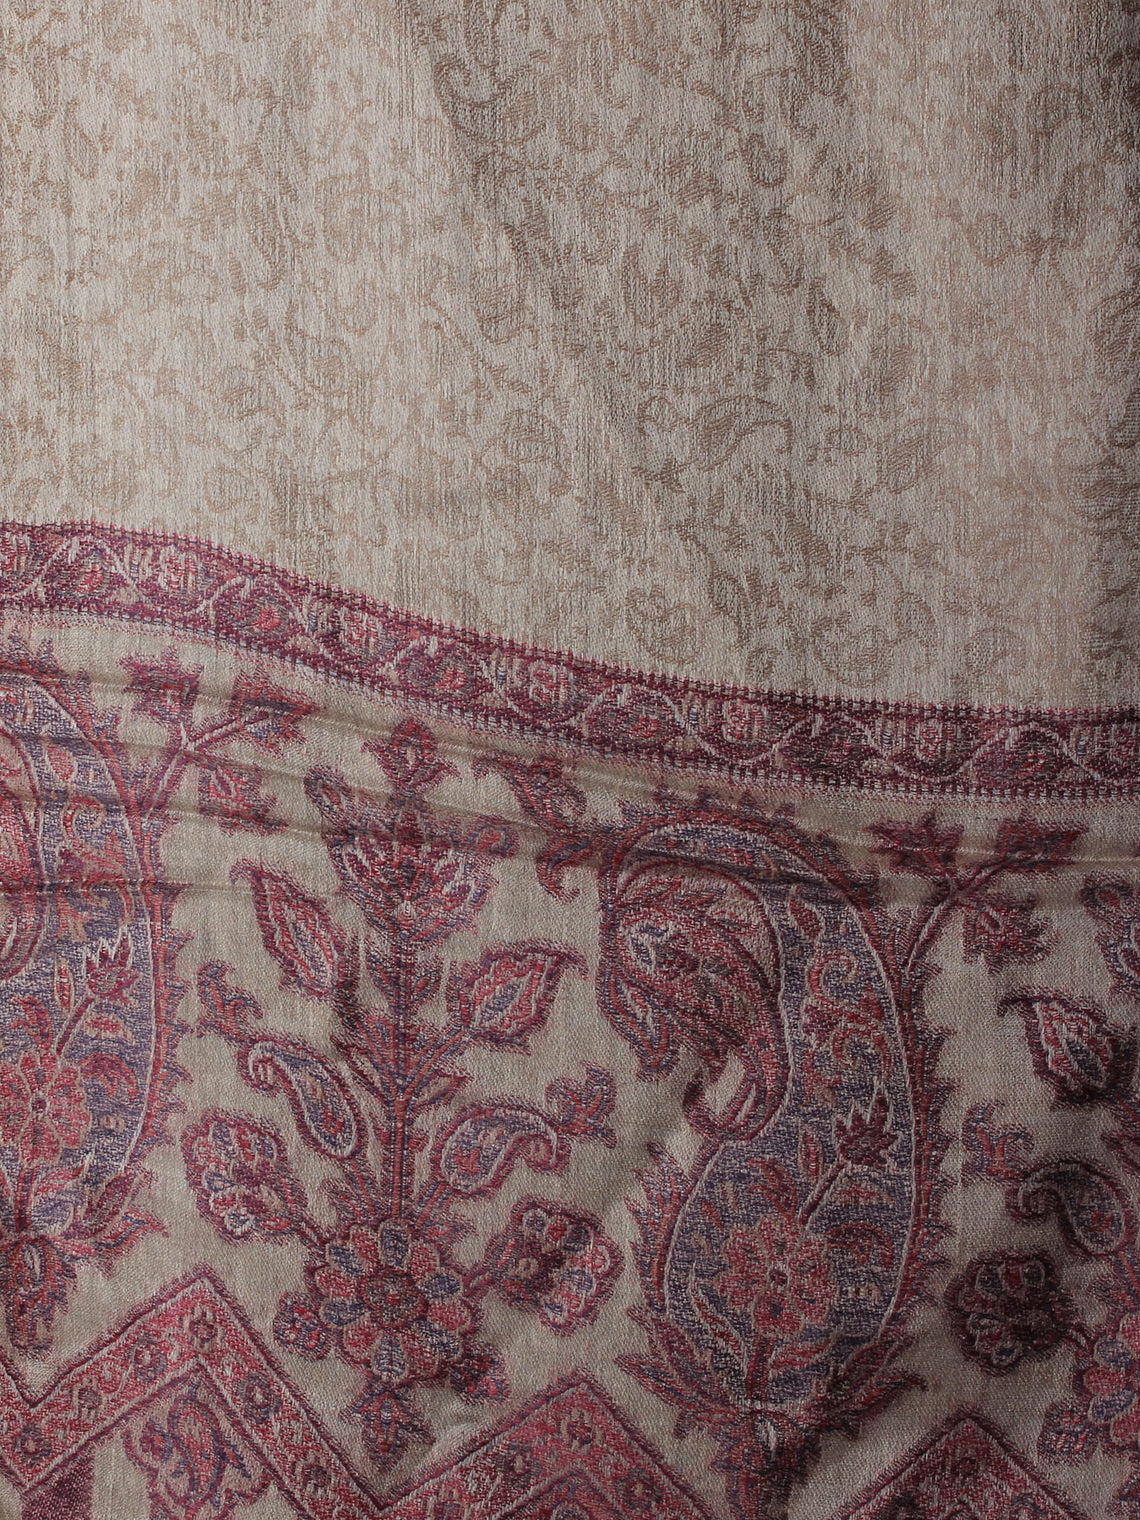 Sandy Brown Pure Wool With Palla Border Self Design Cashmere Stole from Kashmir - S6317096